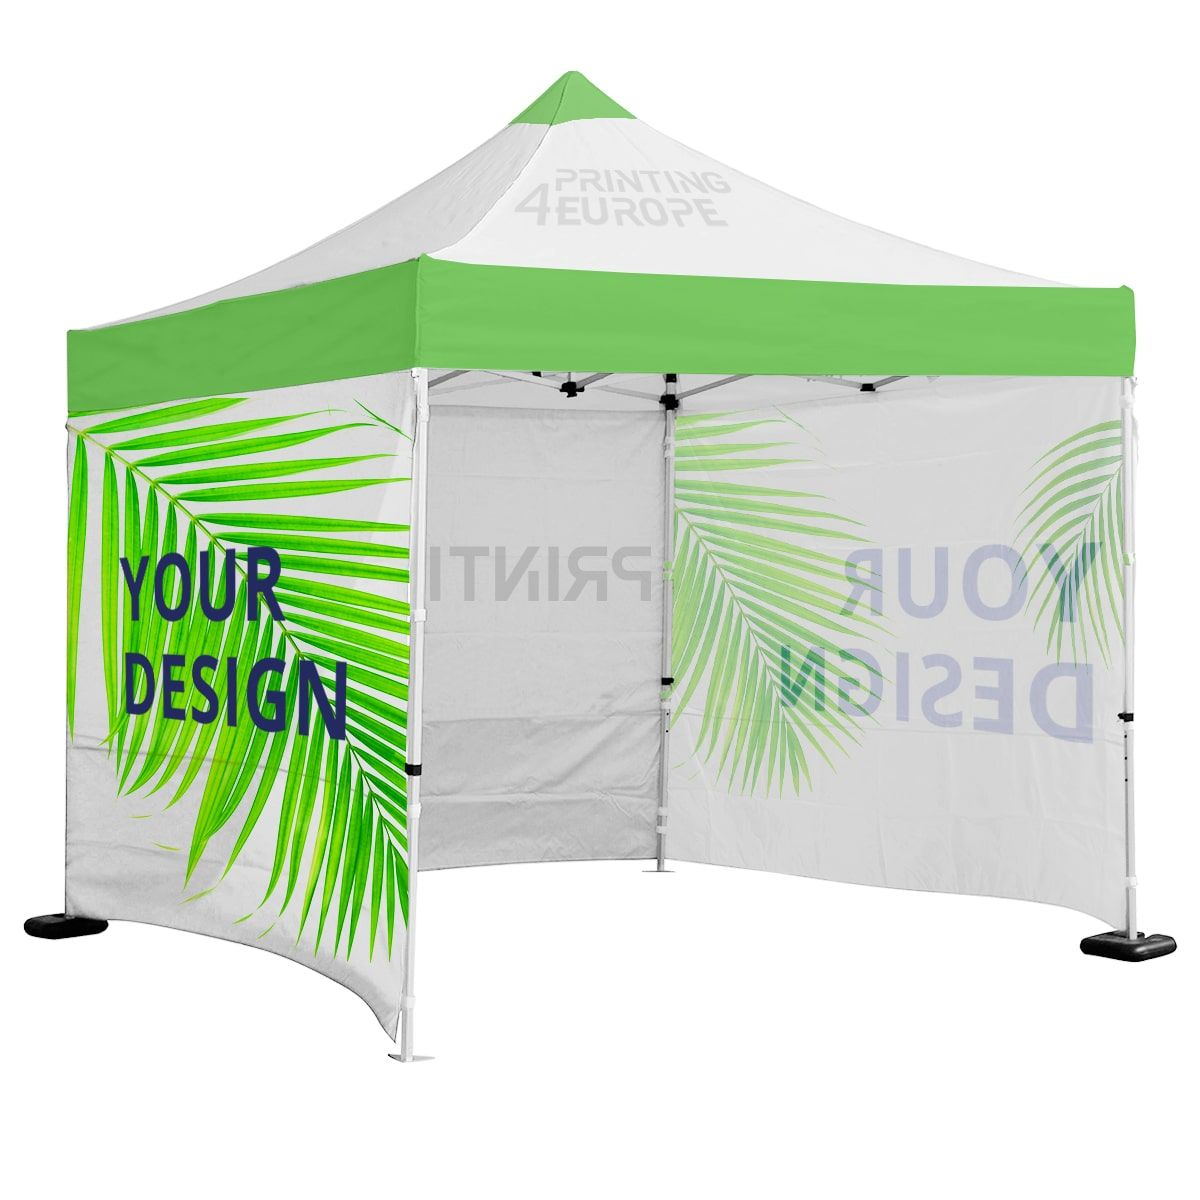 Custom printed tent 3 x 3m with canopy roof and walls.